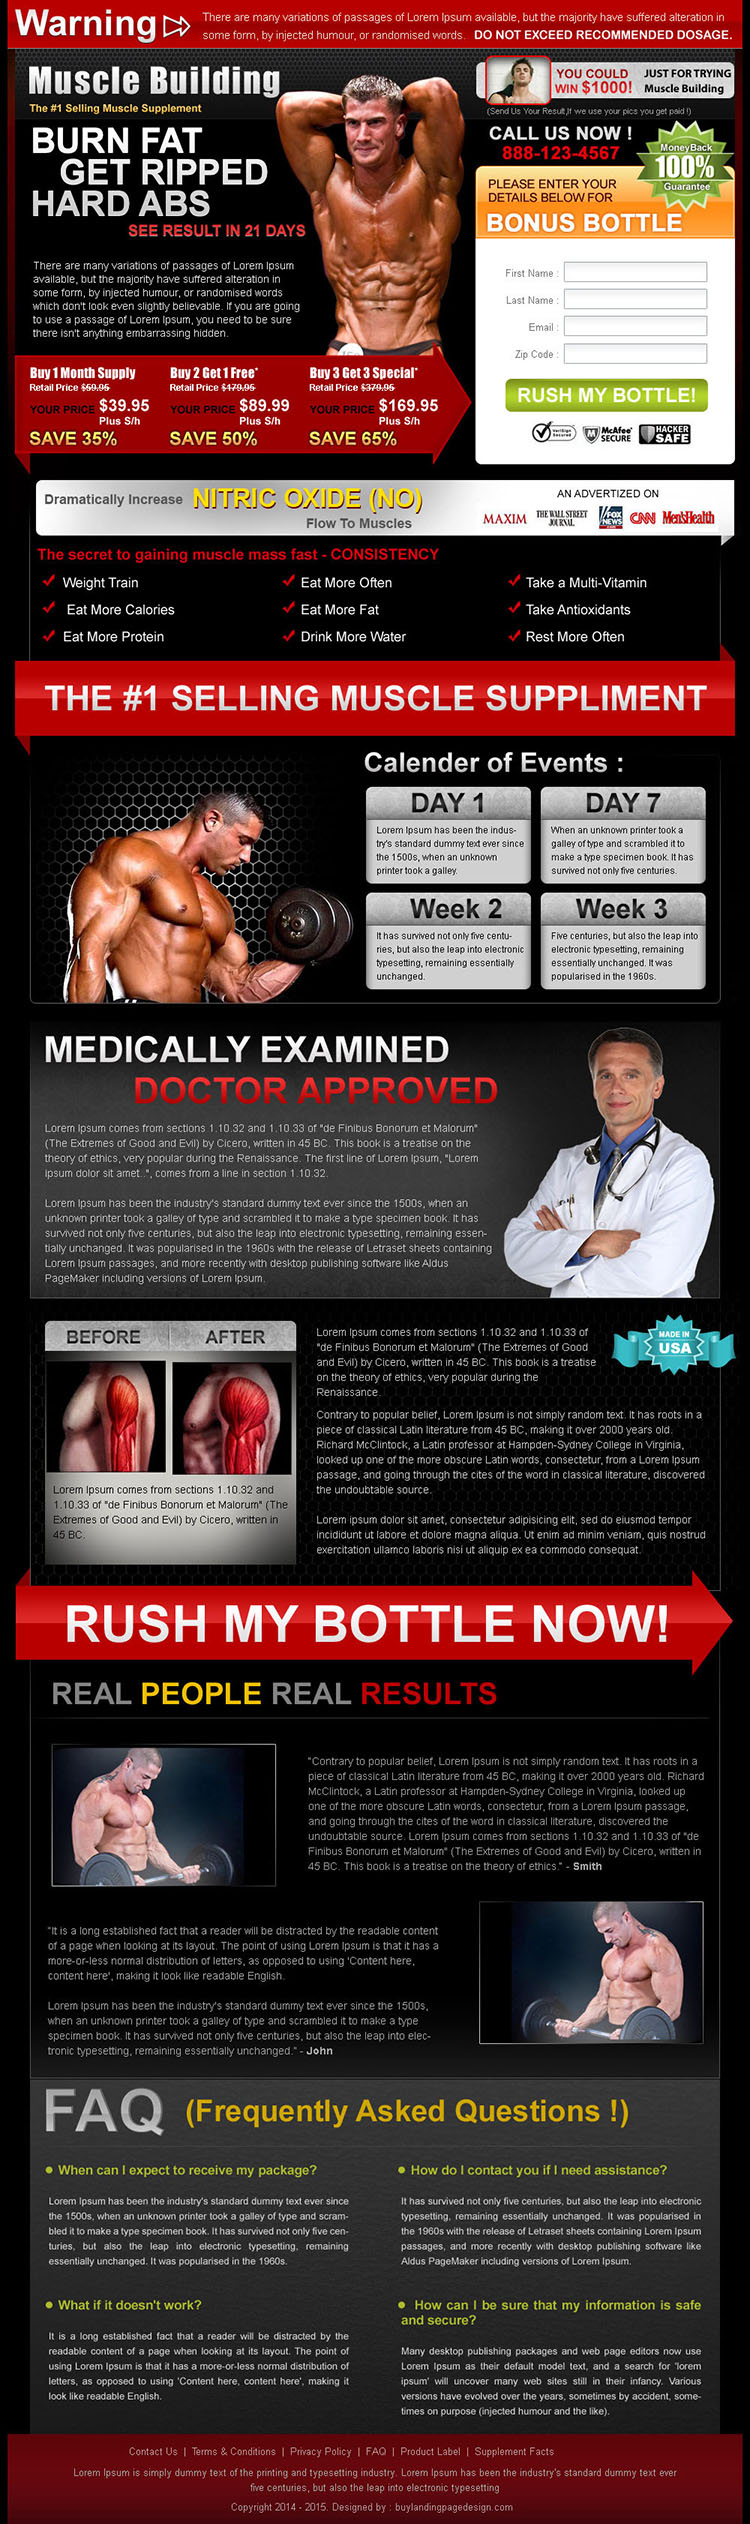 burn fat get ripped highest converting bodybuilding lead capture landing page design